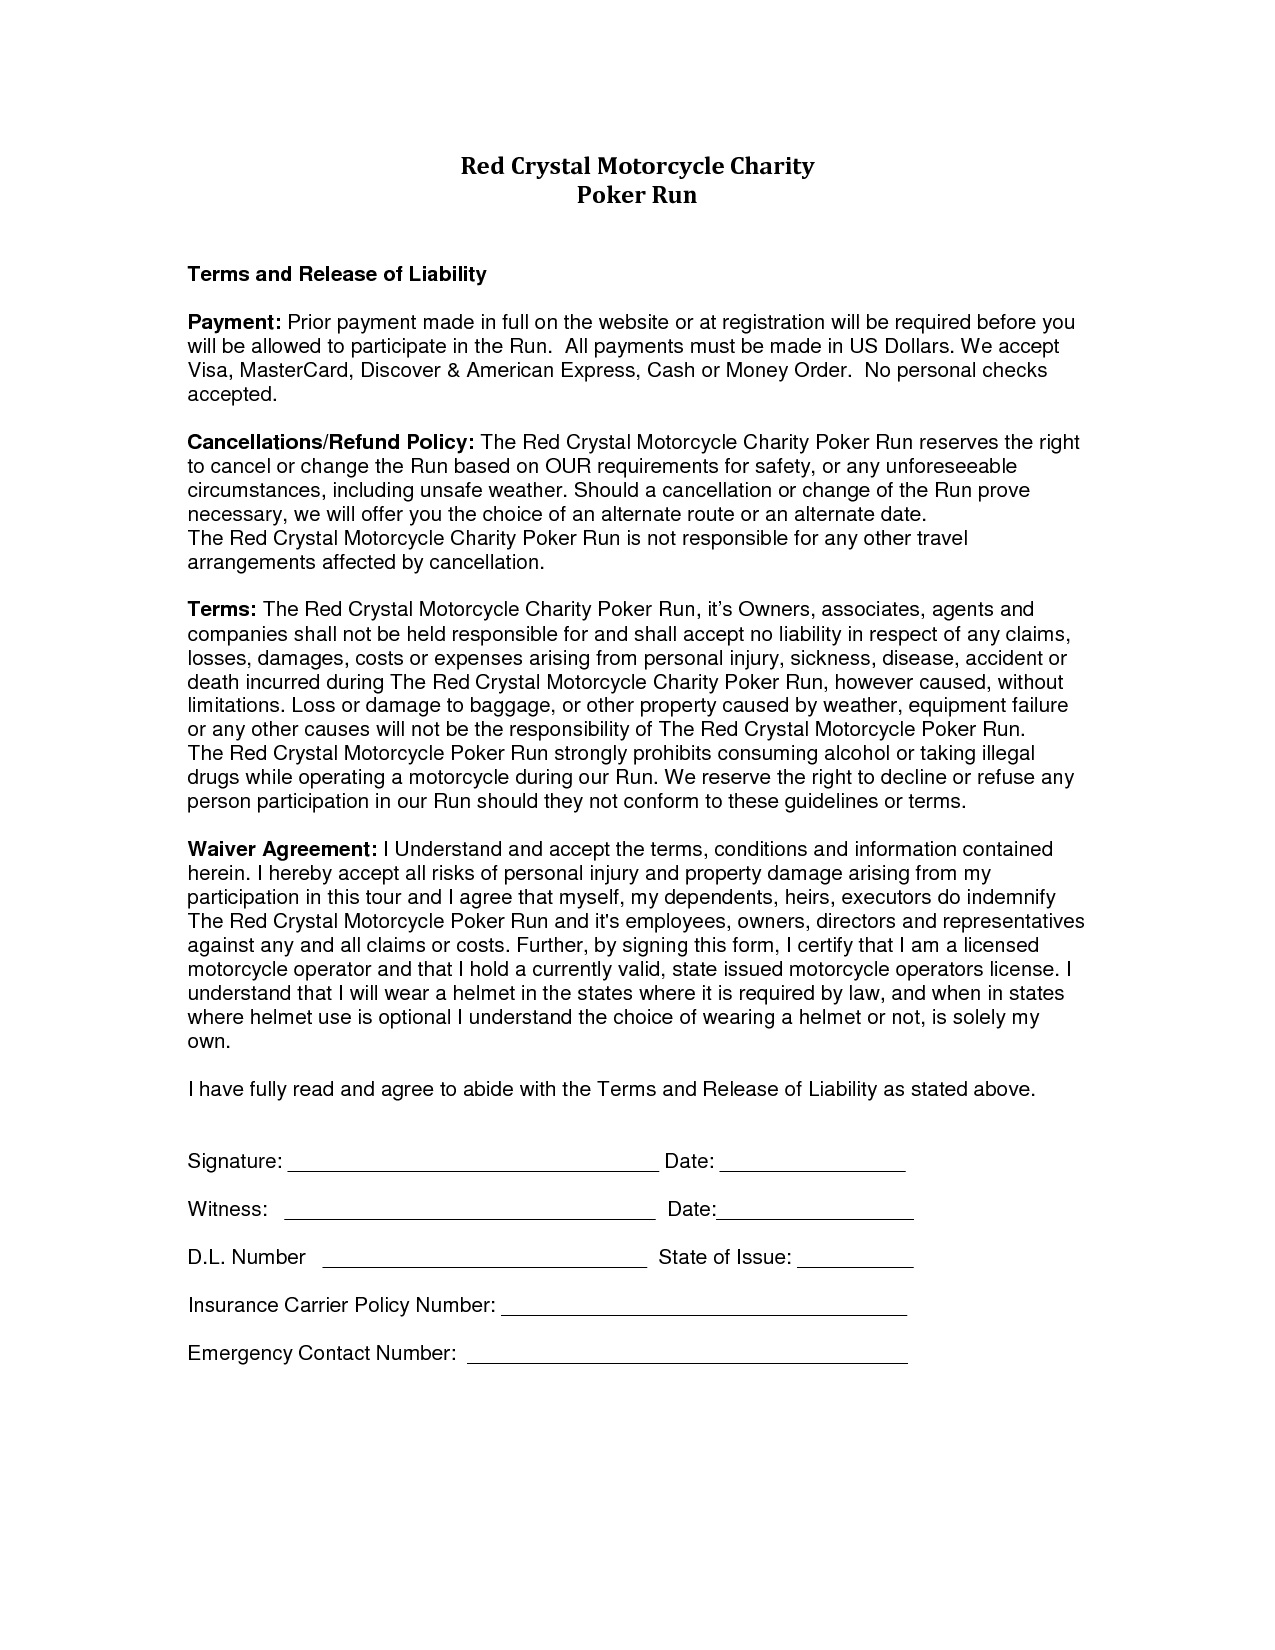 Letter Of Release Of Liability Template